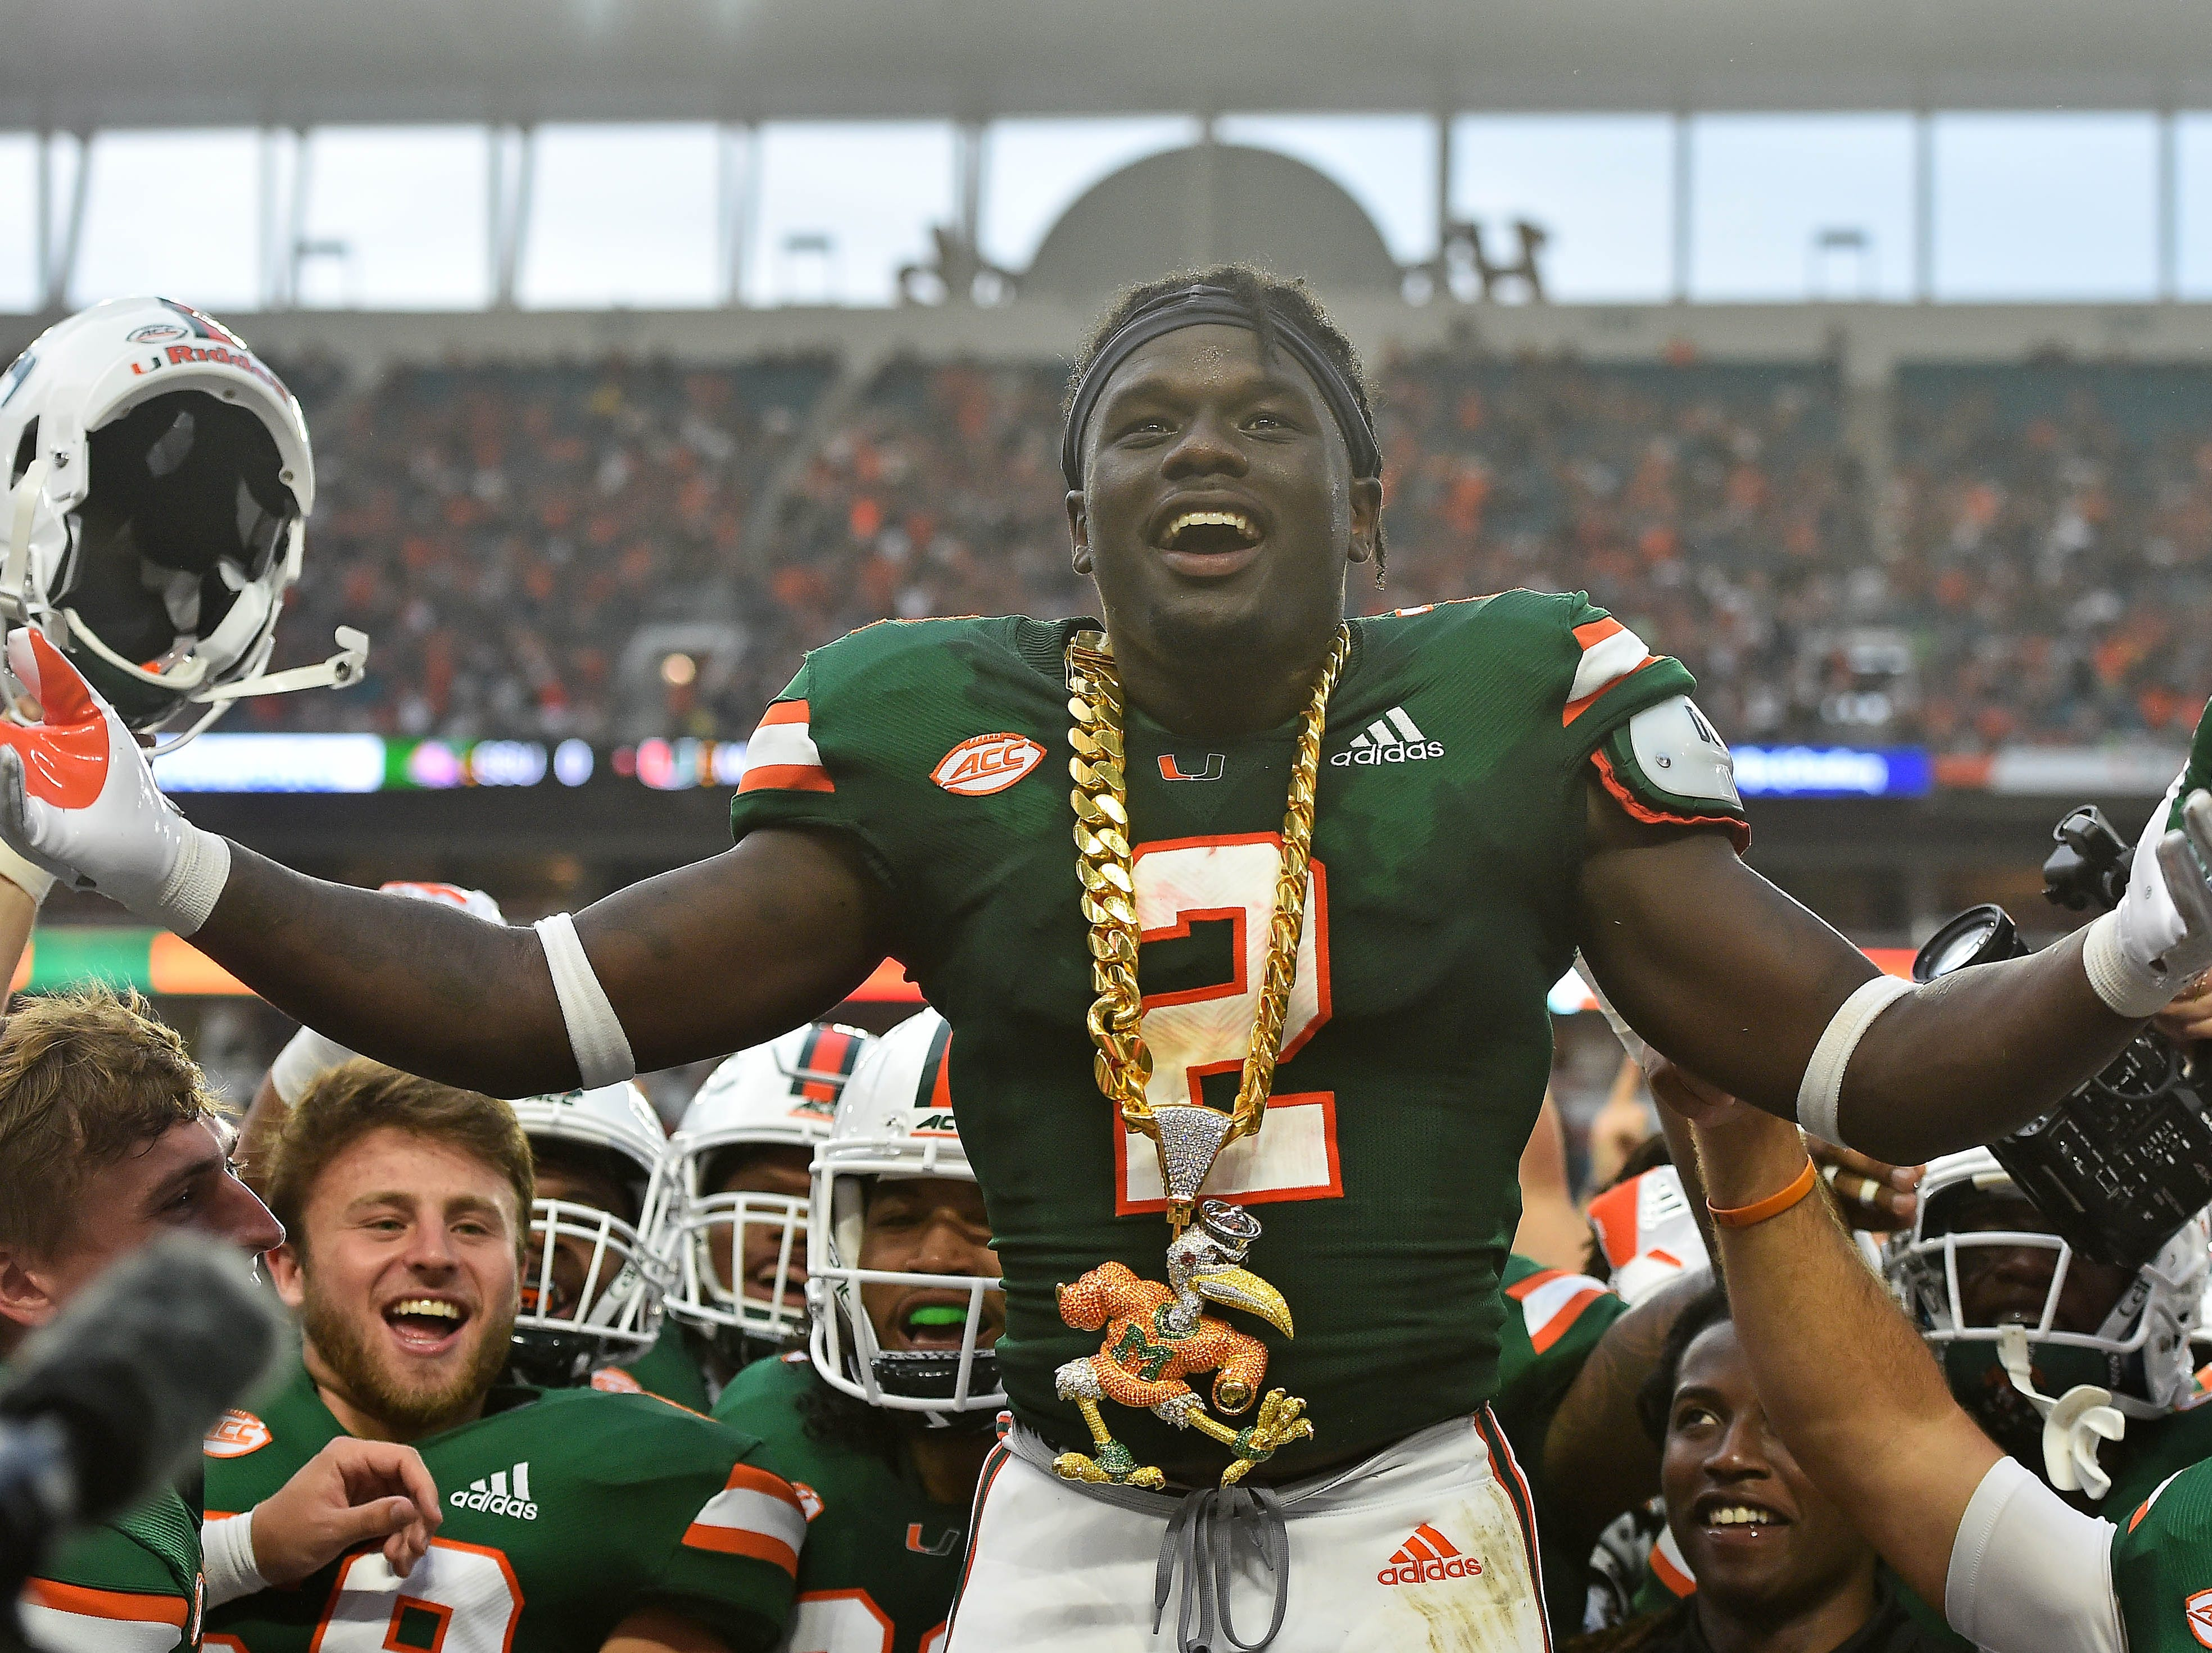 Miami Hurricanes defensive back Trajan Bandy (2) celebrates with the turnover chain after recovering a fumble by Savannah State Tigers during the first half at Hard Rock Stadium.